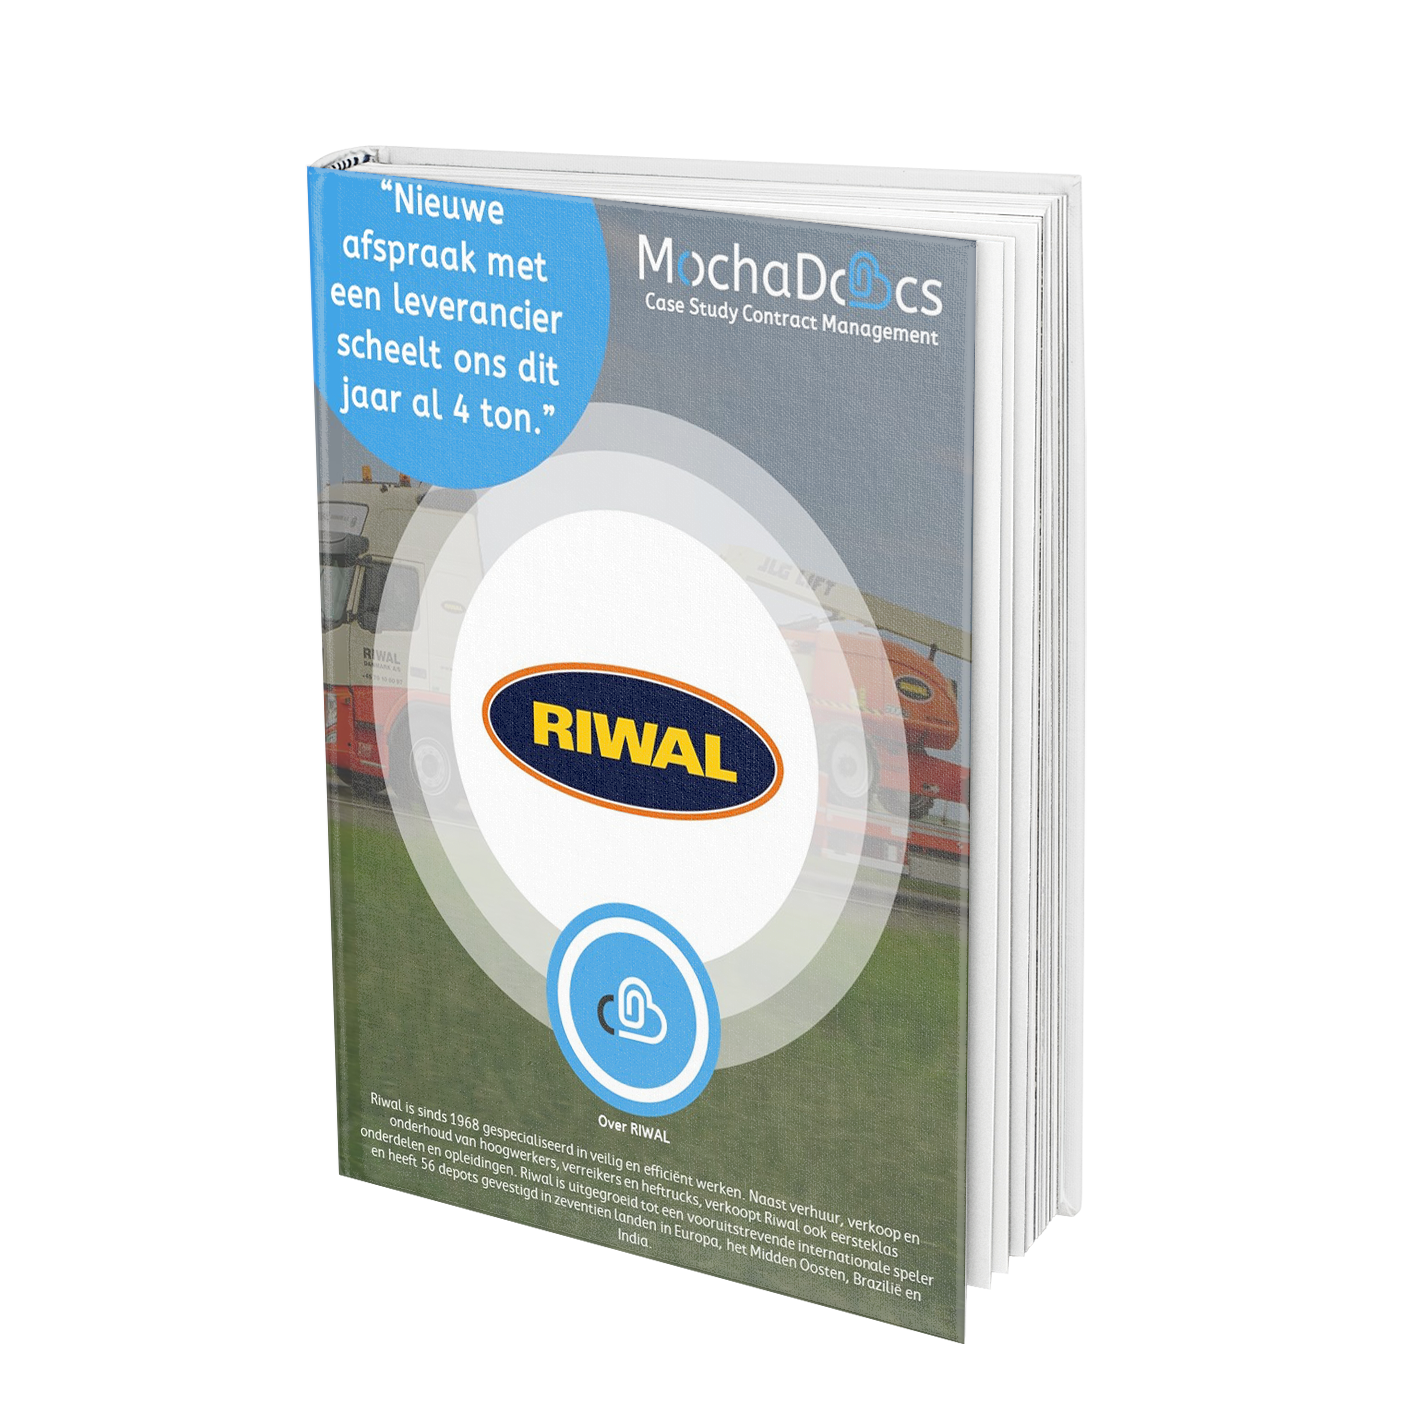 Case Study Contract Management: RIWAL